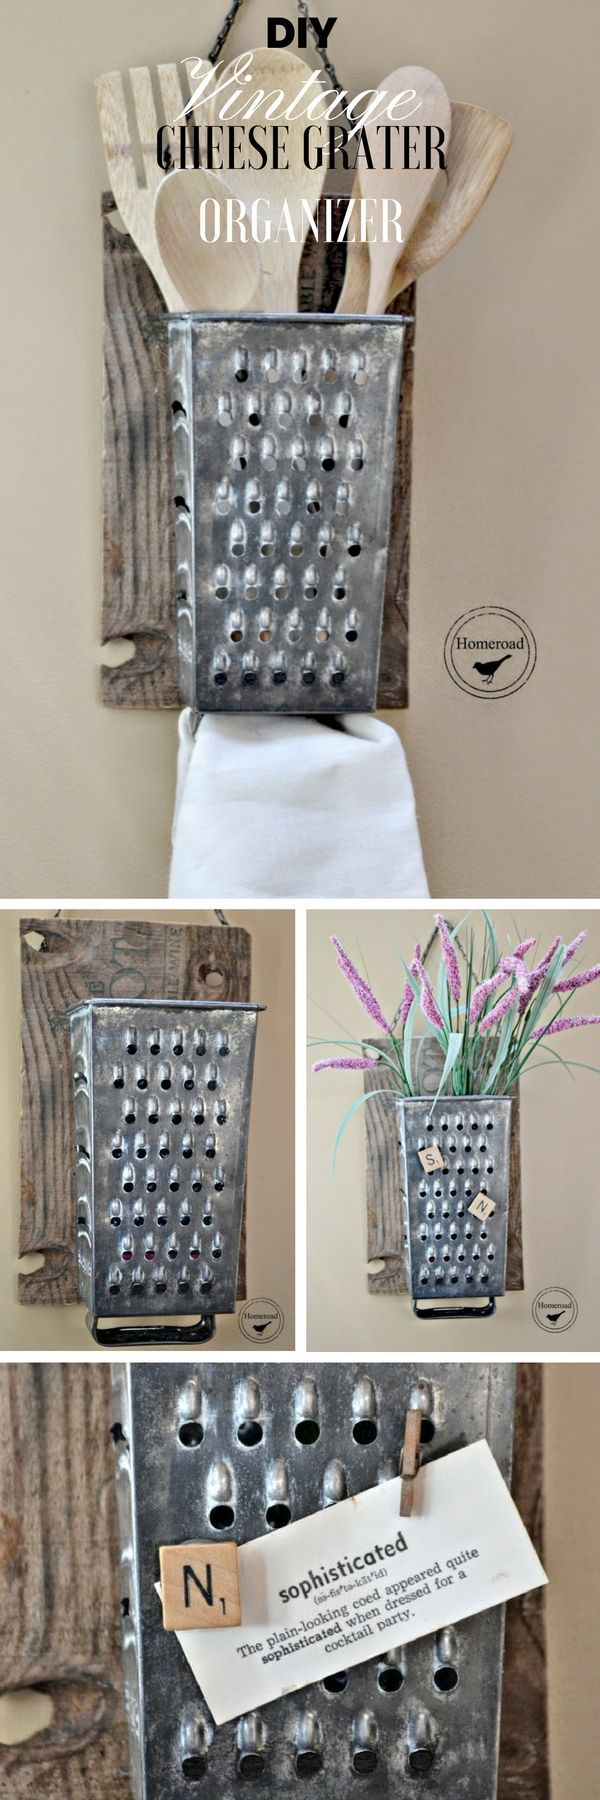 15 Organization DIYs That Will Make Your Kitchen Pretty. Best 25  Vintage decorations ideas on Pinterest   Vintage